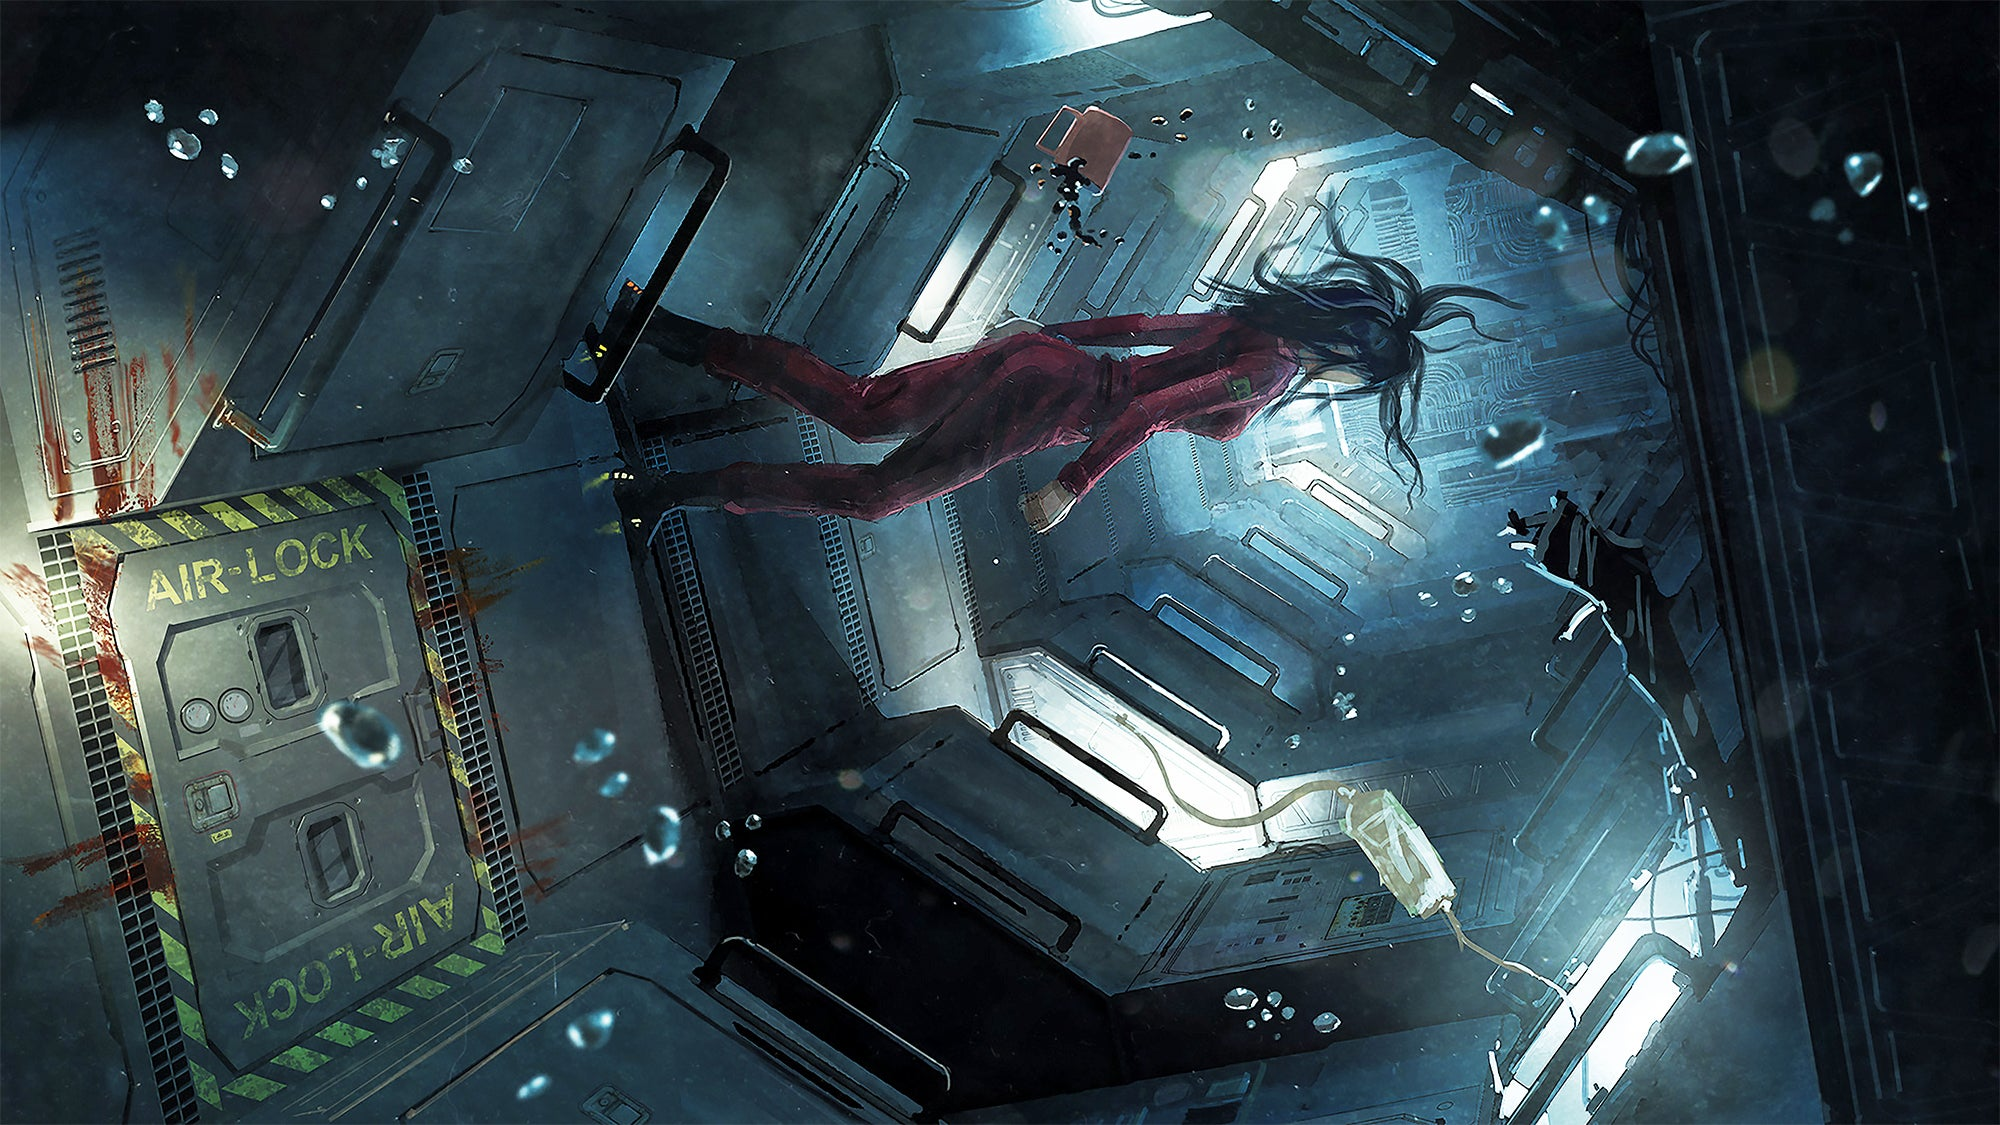 The Art And Making Of The Expanse Will Make You Even More Stoked For The Sci-Fi Standout's Return